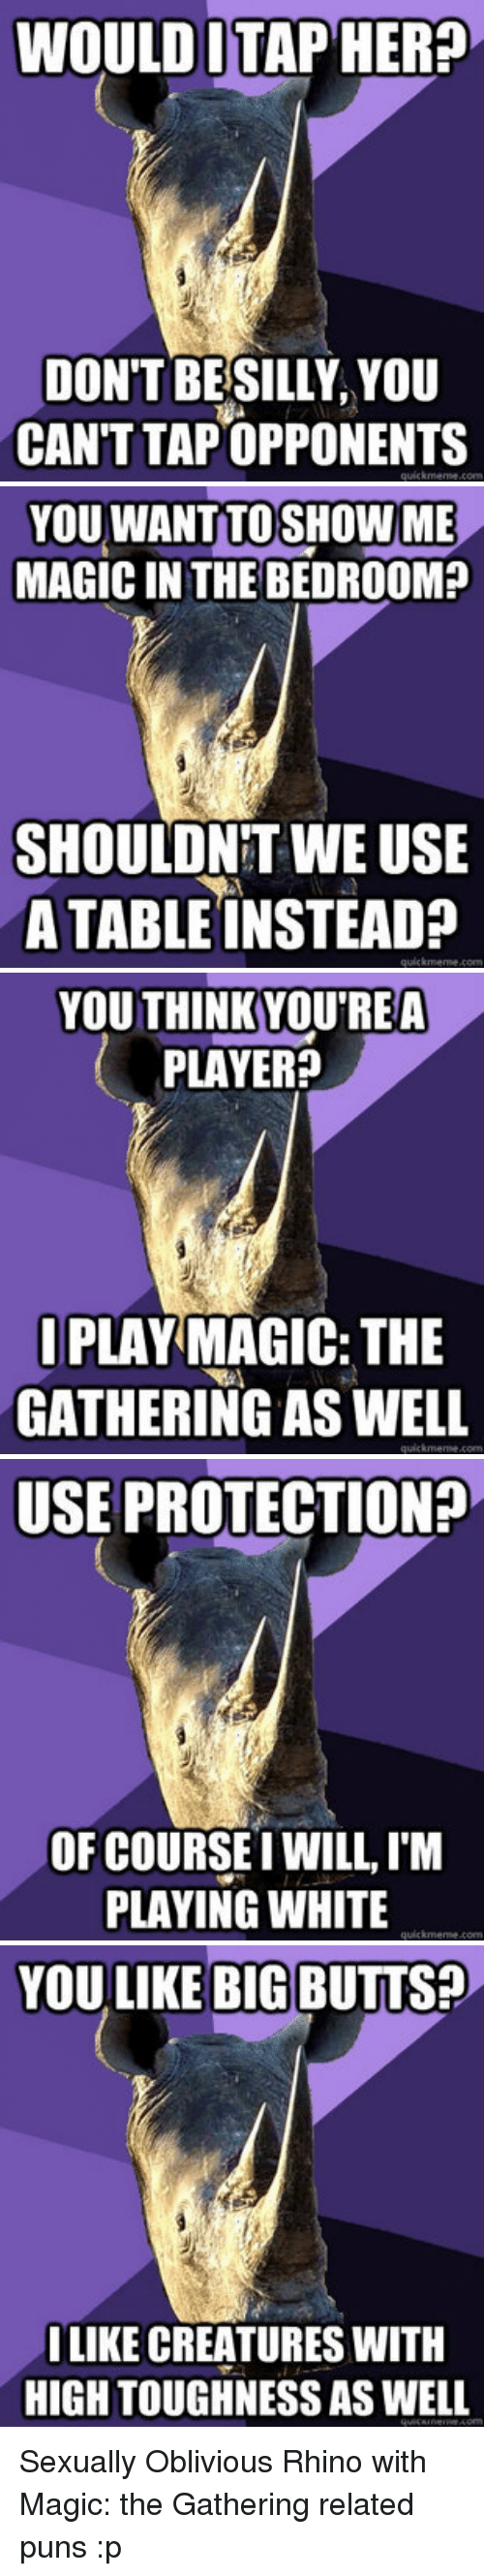 puns: WOULD ITAP HER?  DON'T BESILLY, YOU  CAN'T TAPOPPONENTS   YOU WANT TOSHOW ME  MAGIC IN THE BEDROOM?  SHOULONET WE USE  A TABLE INSTEAD?   YOU THINKYOU'REA  PLAYER?  IPLAY MAGIC: THE  GATHERING AS WELL   USE PROTECTION?  OF COURSEI WILL, I'M  PLAYING WHITE   YOU LIKE BIG BUTTS?  LIKE CREATURES WITH  HIGH TOUGHNESS AS WELL <p>Sexually Oblivious Rhino with Magic: the Gathering related puns :p</p>